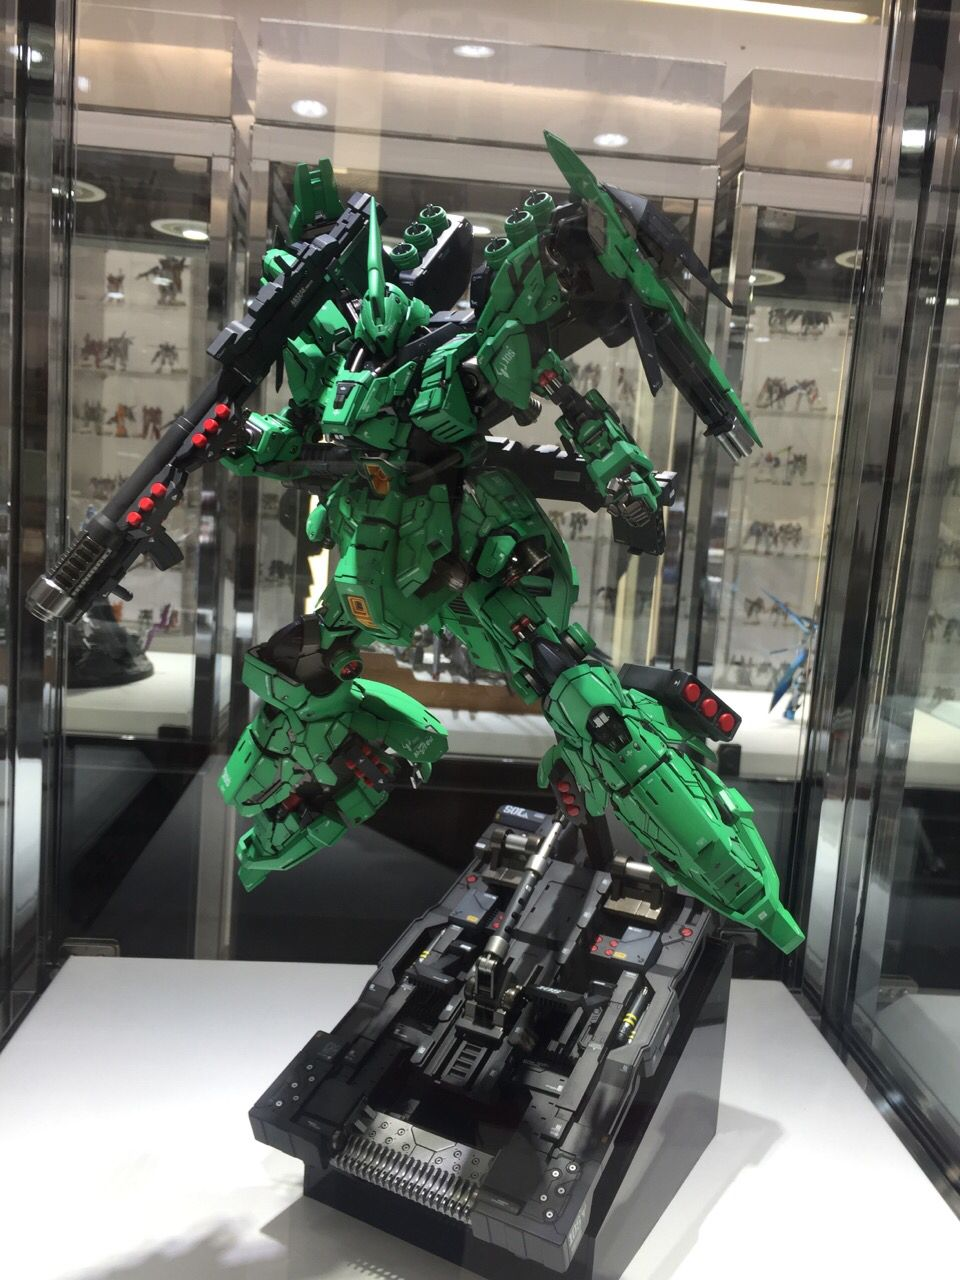 2015 would gundam competition